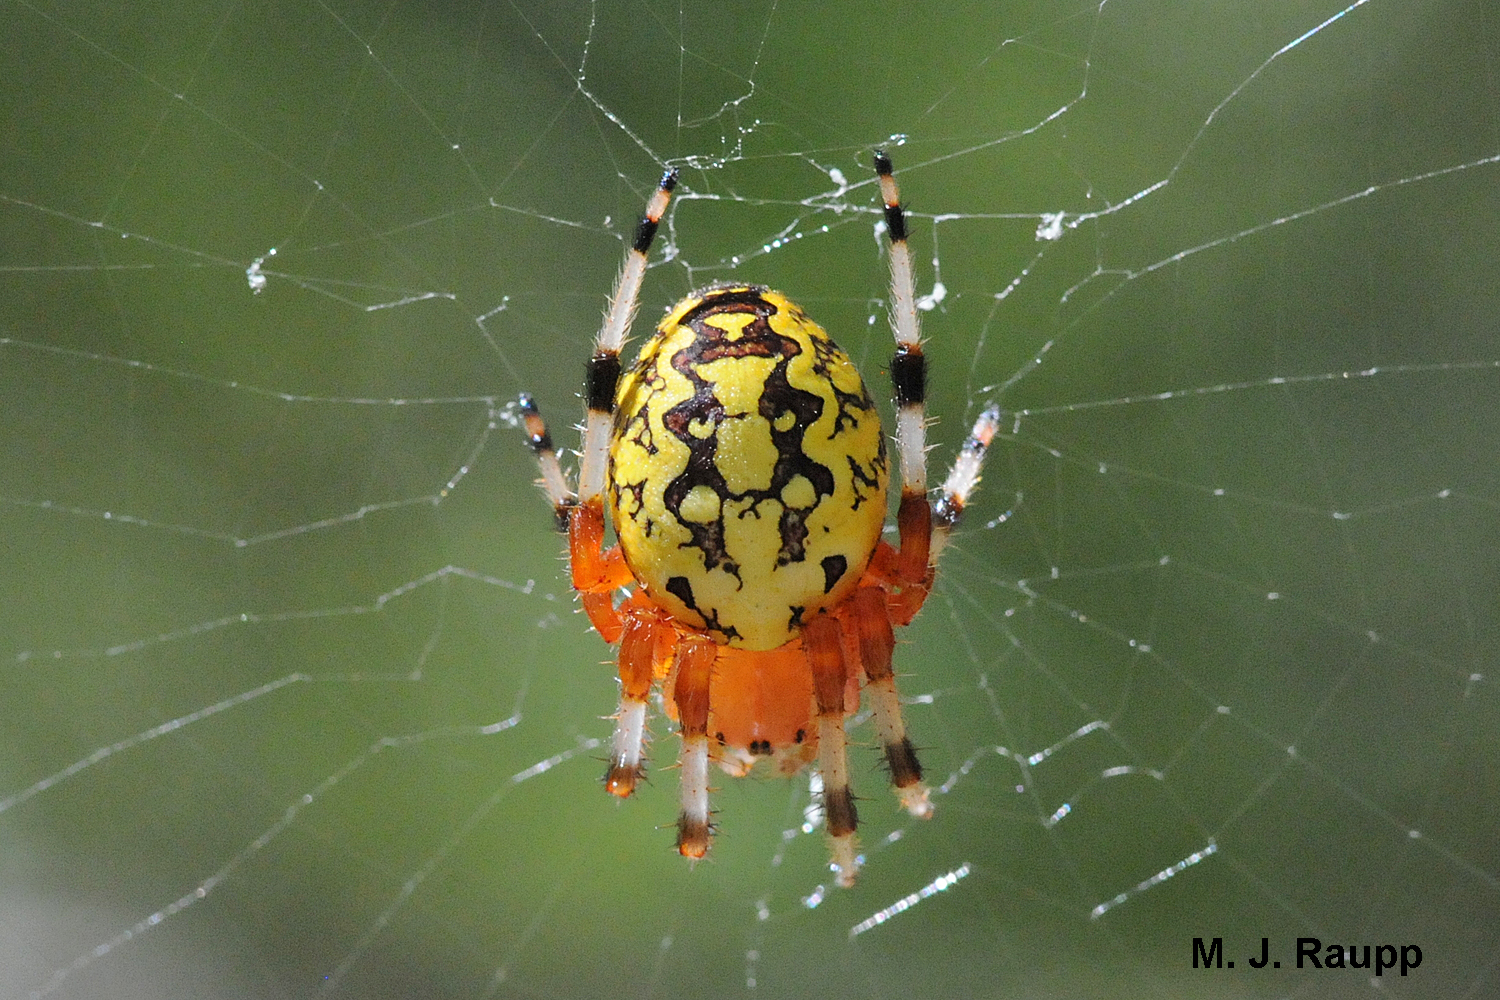 800x600         When not hiding in their retreat, marbled orb weavers sometimes hang out in the center of their web.          Normal   0           false   false   false     EN-US   X-NONE   X-NONE                                  MicrosoftInternetExplorer4